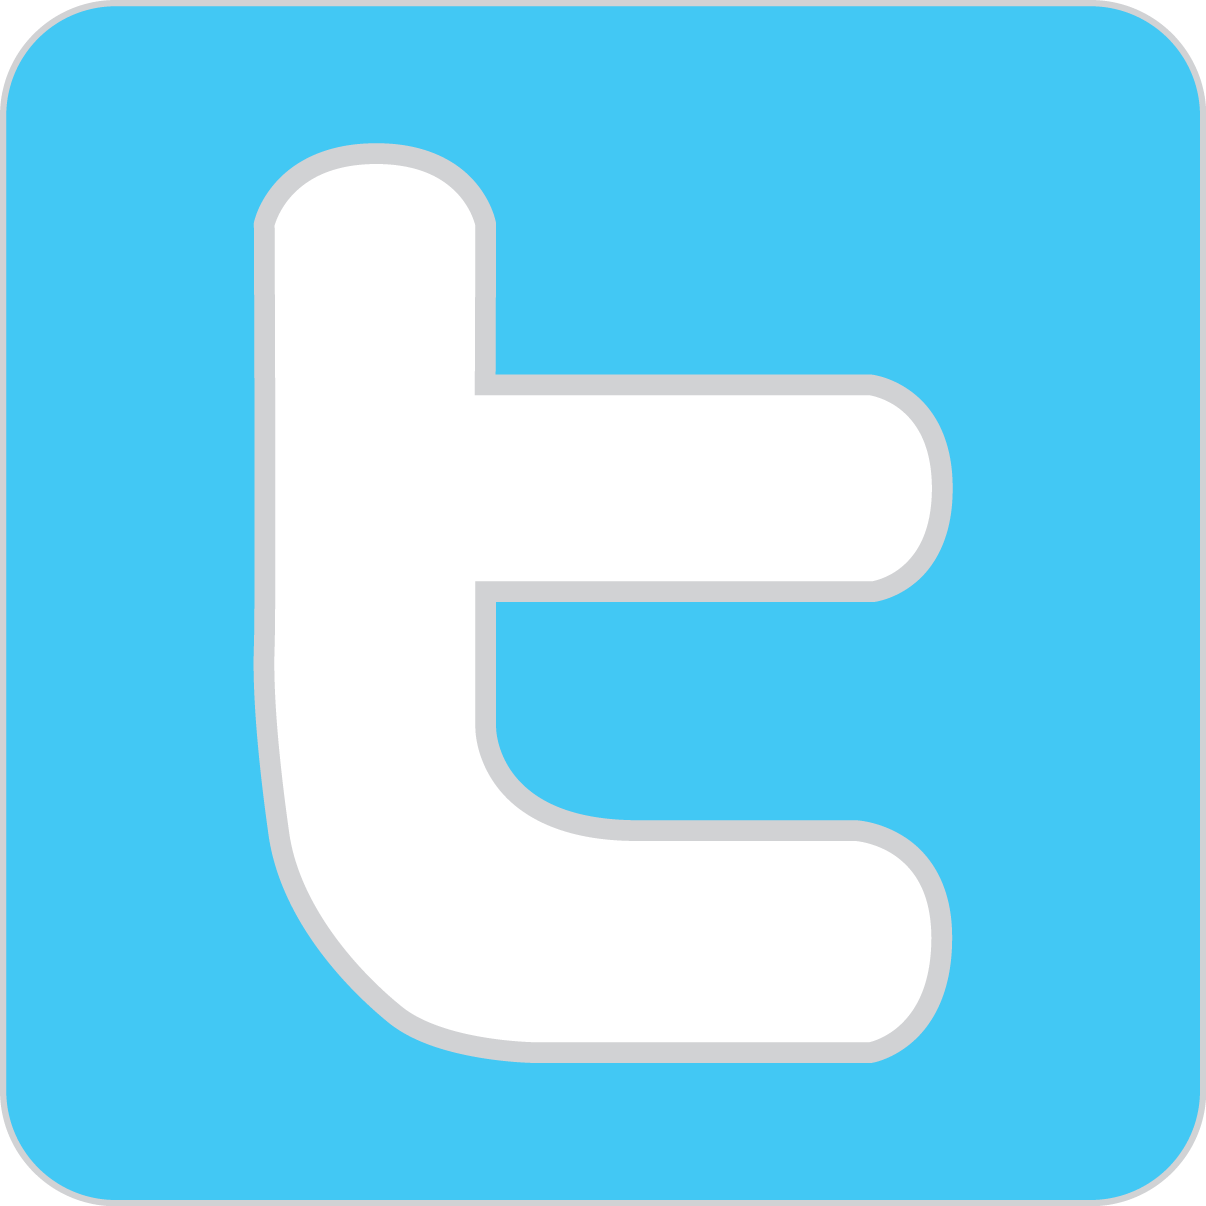 twitter high quality png web icons png rh webiconspng com twitter logo png format twitter logo png white